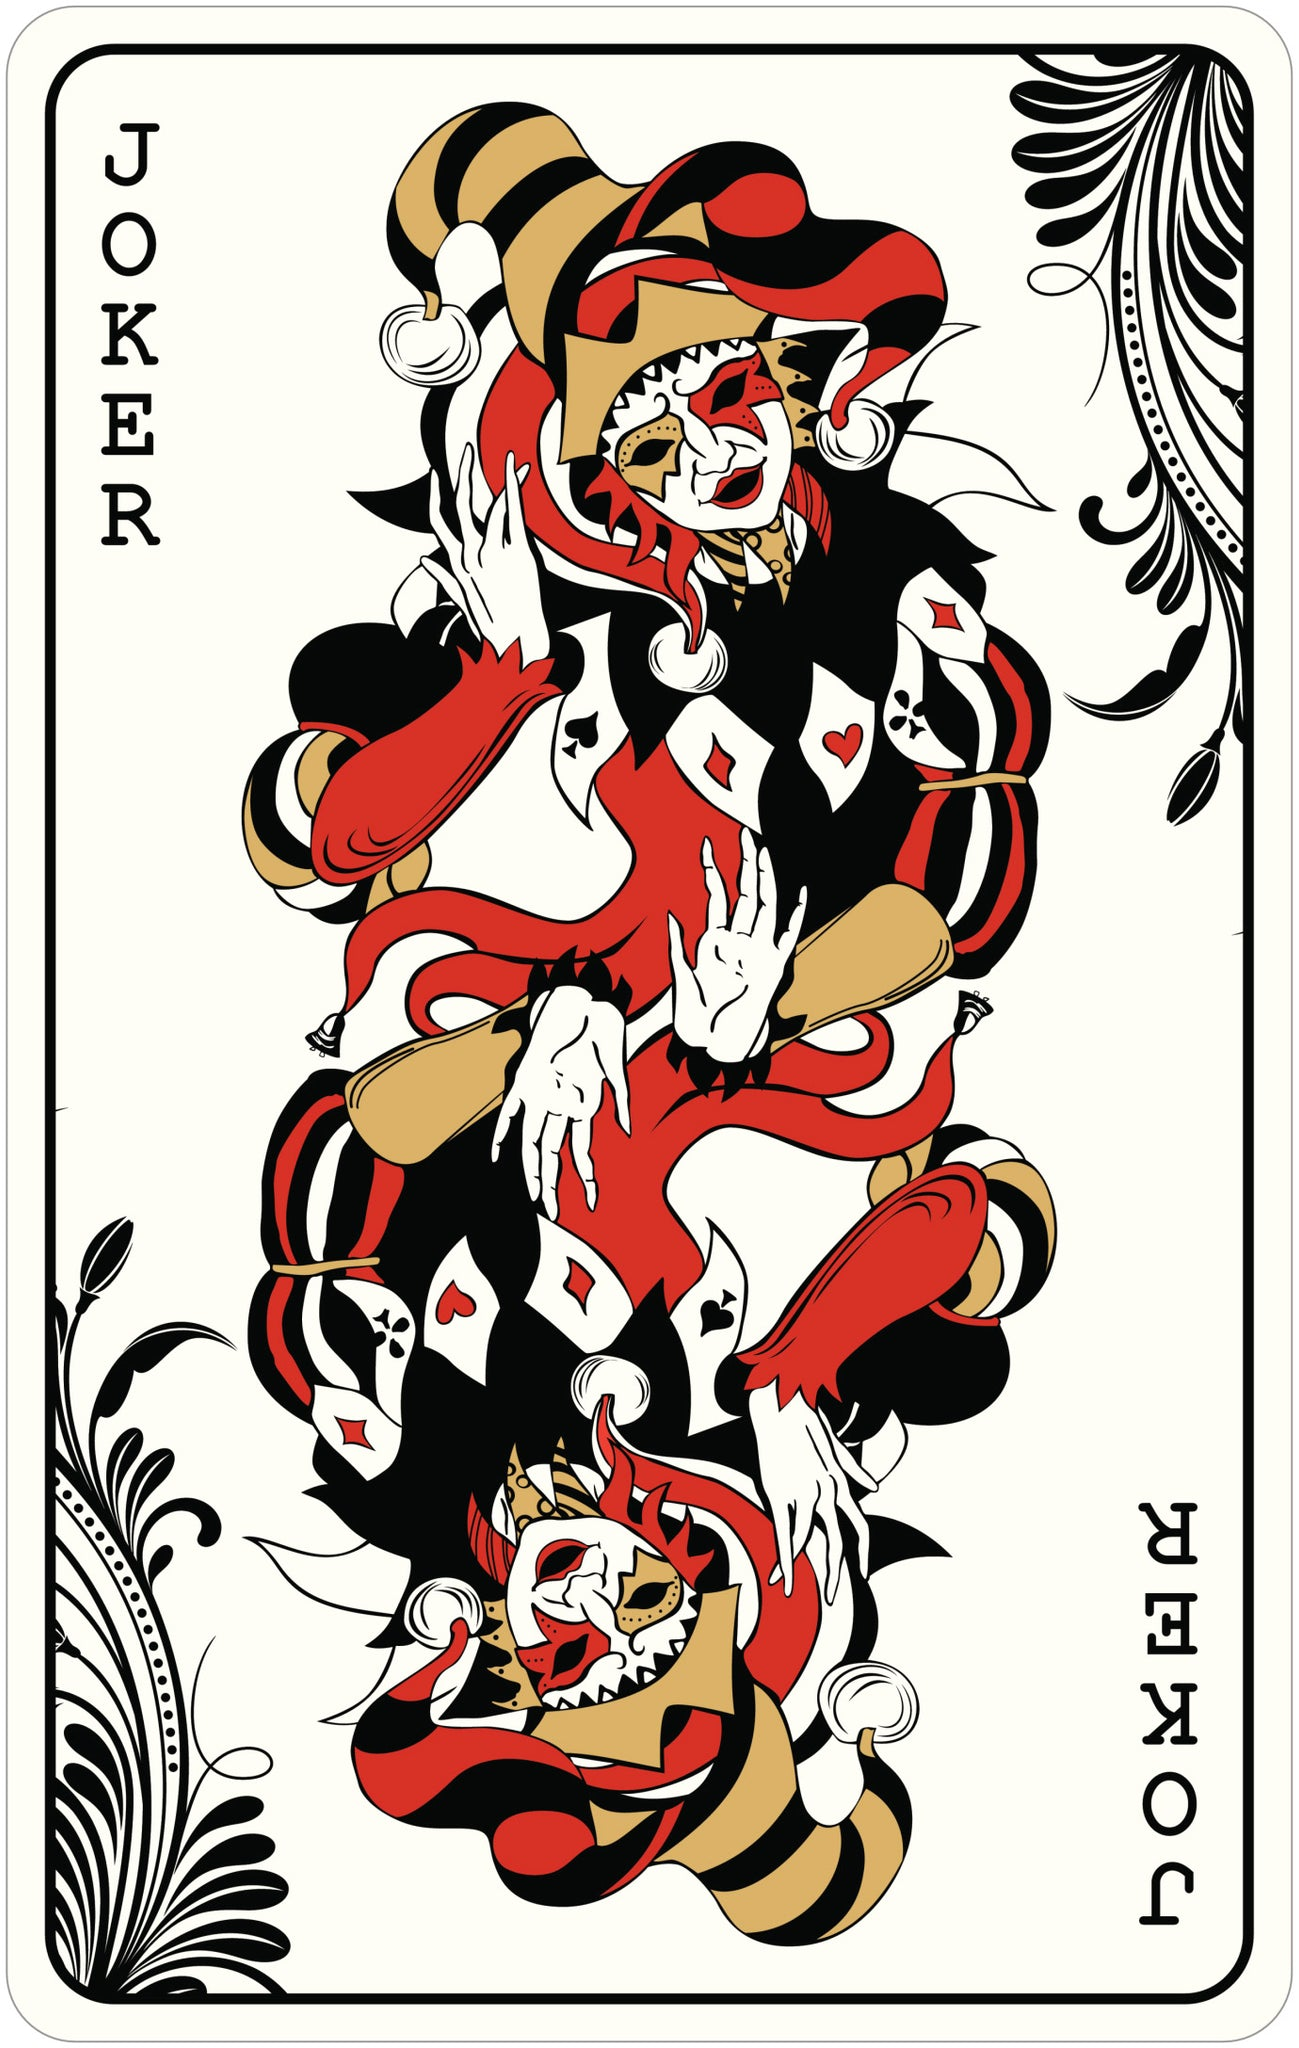 MEDIEVAL JOKER PLAYING CARD SPADE DIAMOND HEART CLUB GOLD BLACK RED WHITE Vinyl Decal Sticker